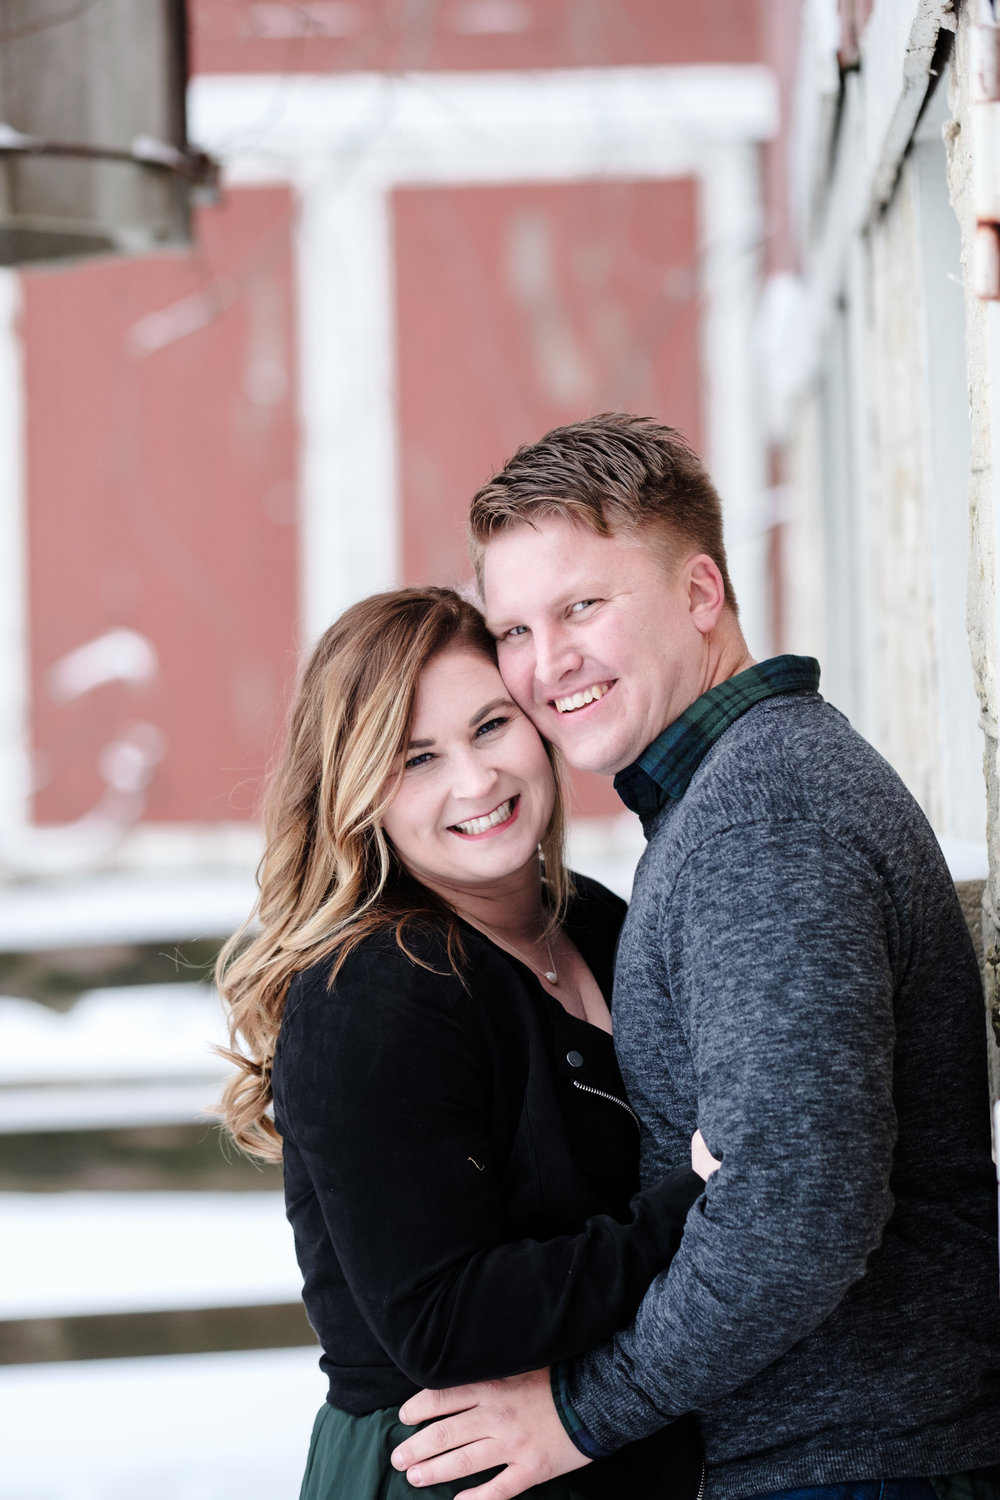 Engagement photo at orchard ridge farms the pavilion, couple leaning against the red barn snuggling to keep warm